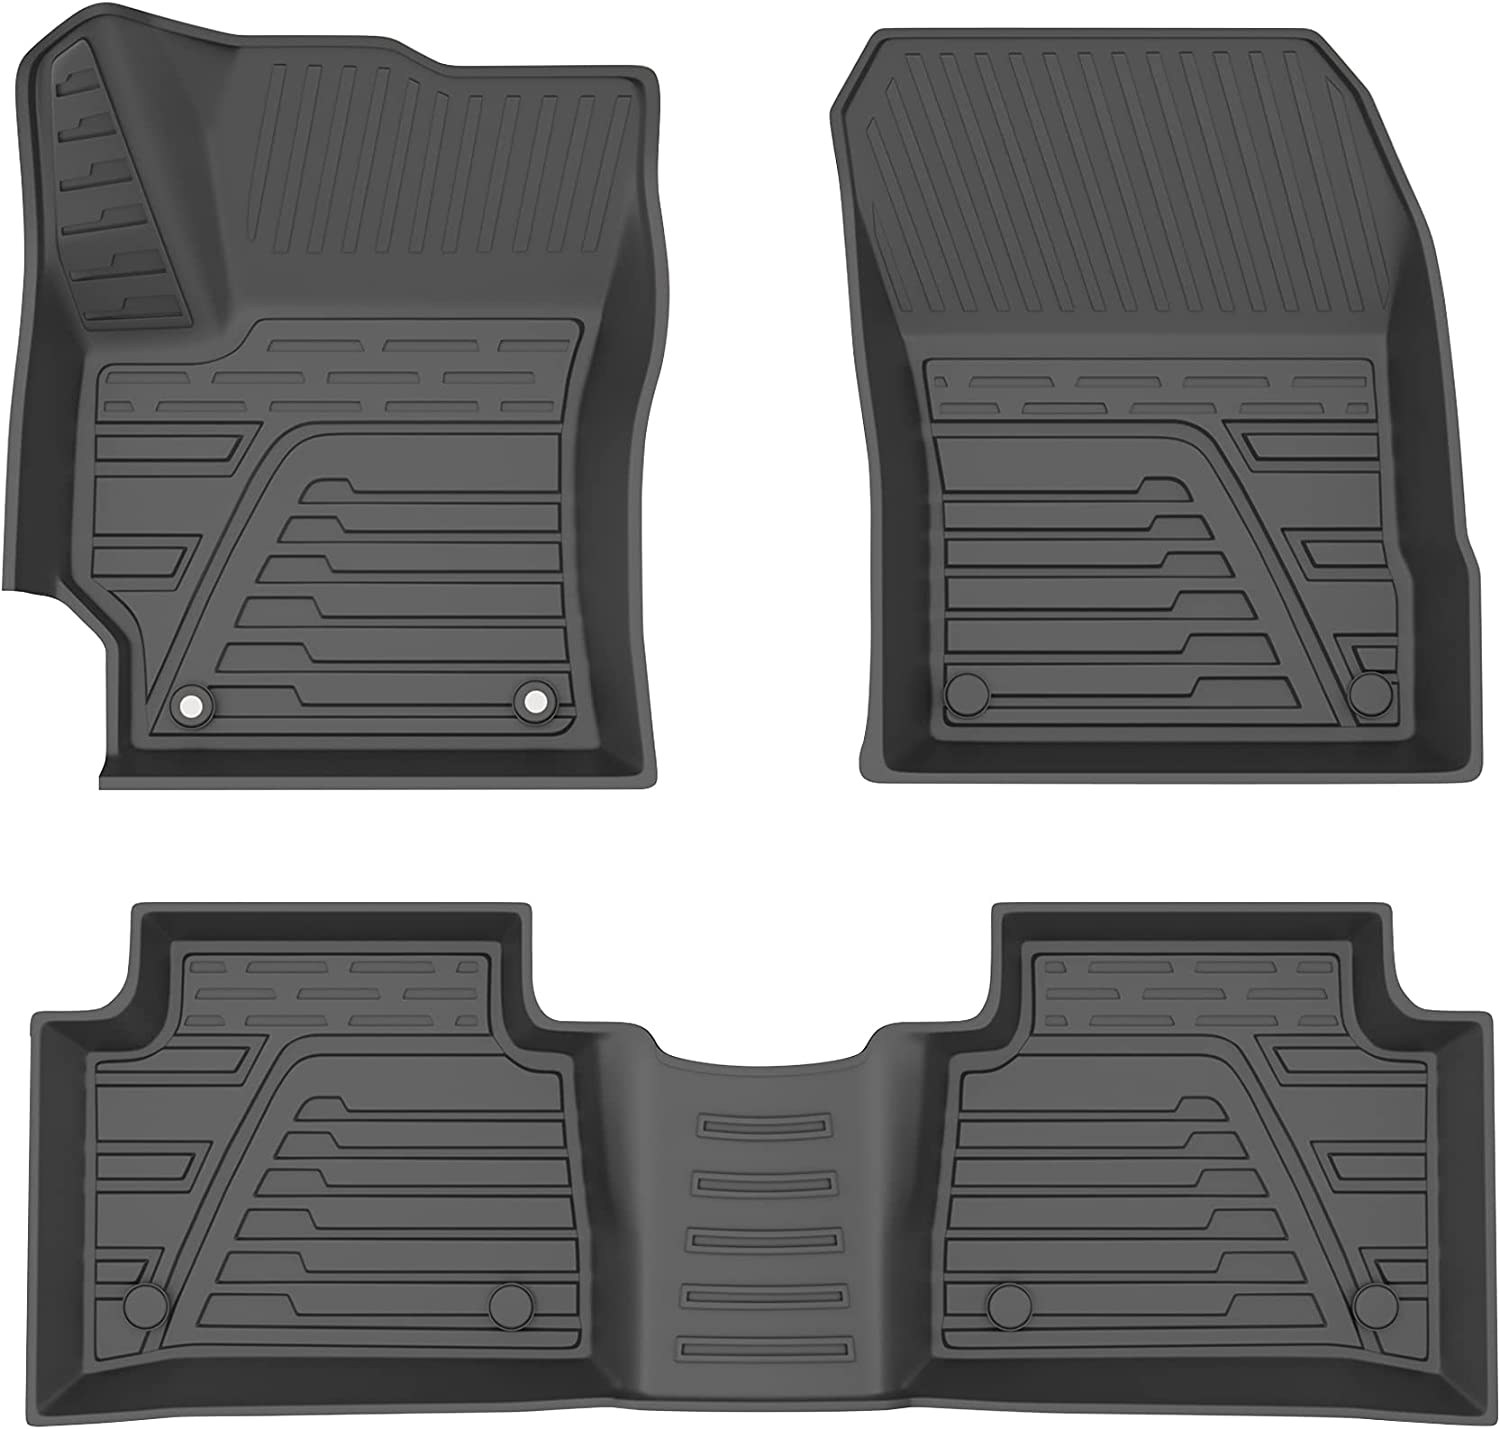 MOSTPLUS All-Weather Rubber Seat TPE Compatib Liners Fashionable Floor Credence Mats